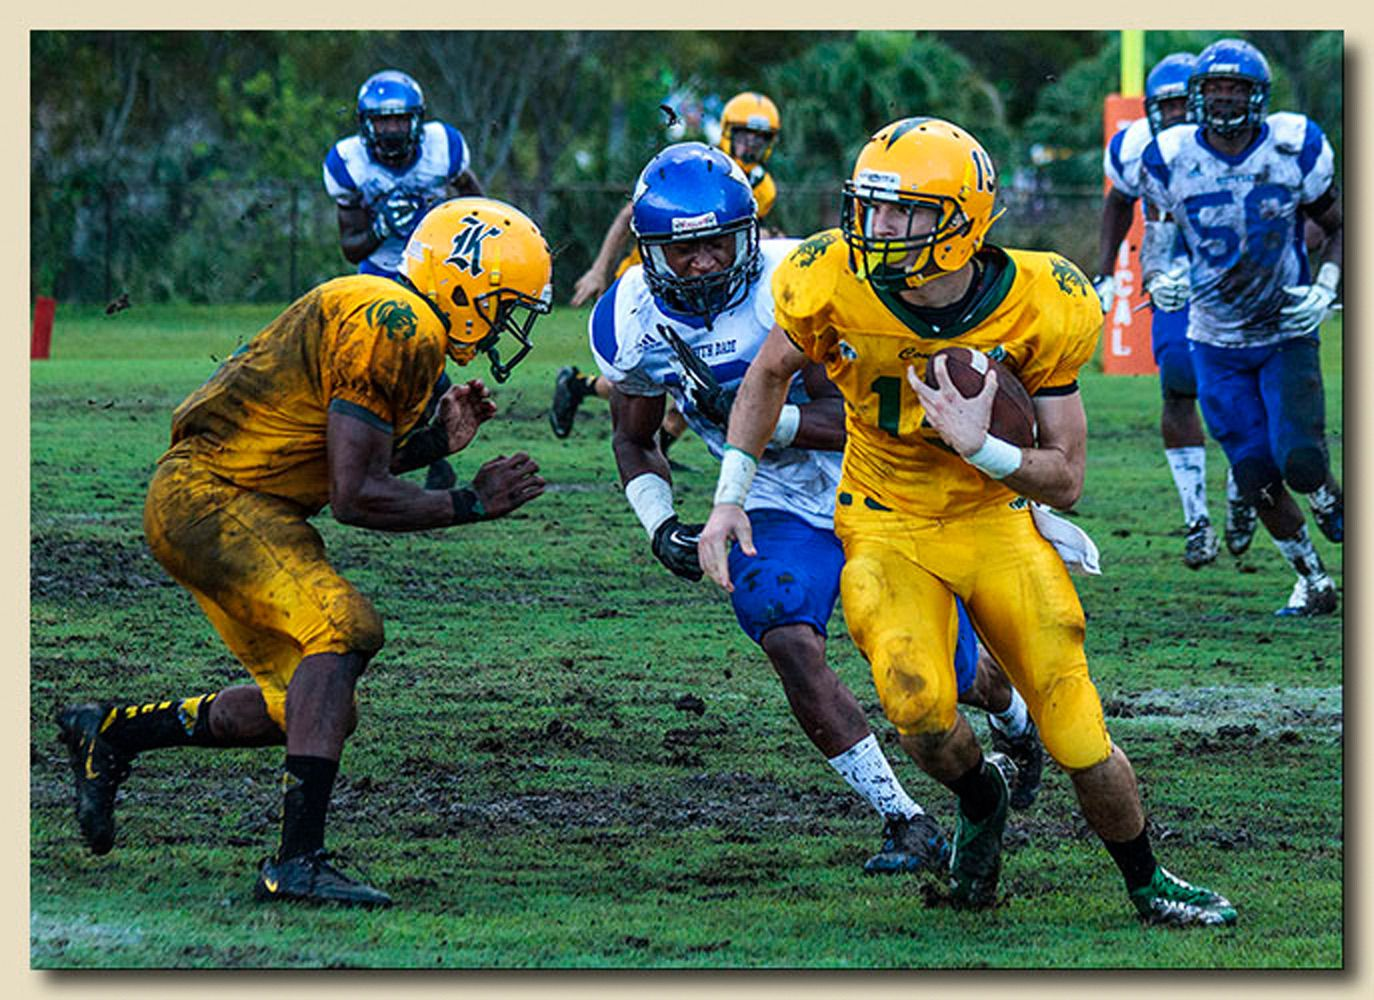 Joel Careaga (19) Ball Carrier